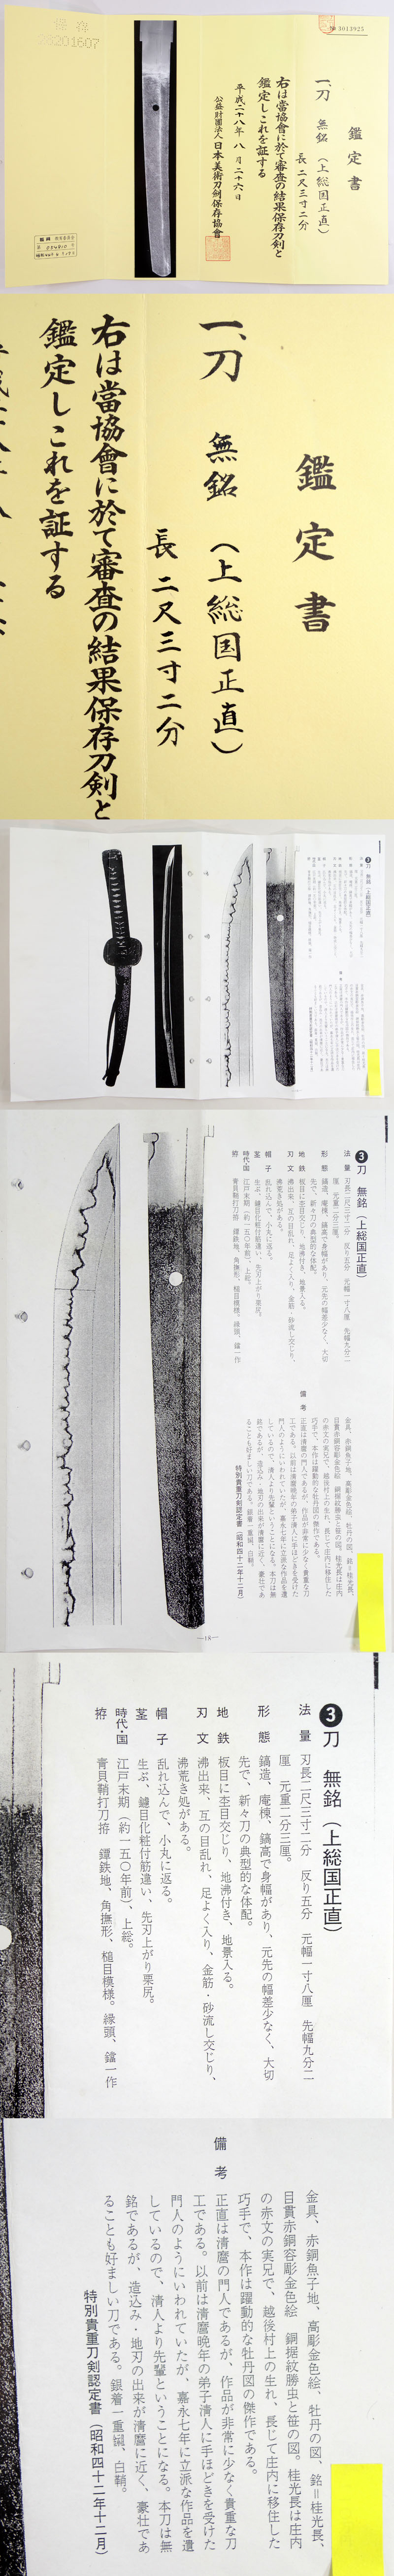 無銘(上総国正直) Picture of Certificate